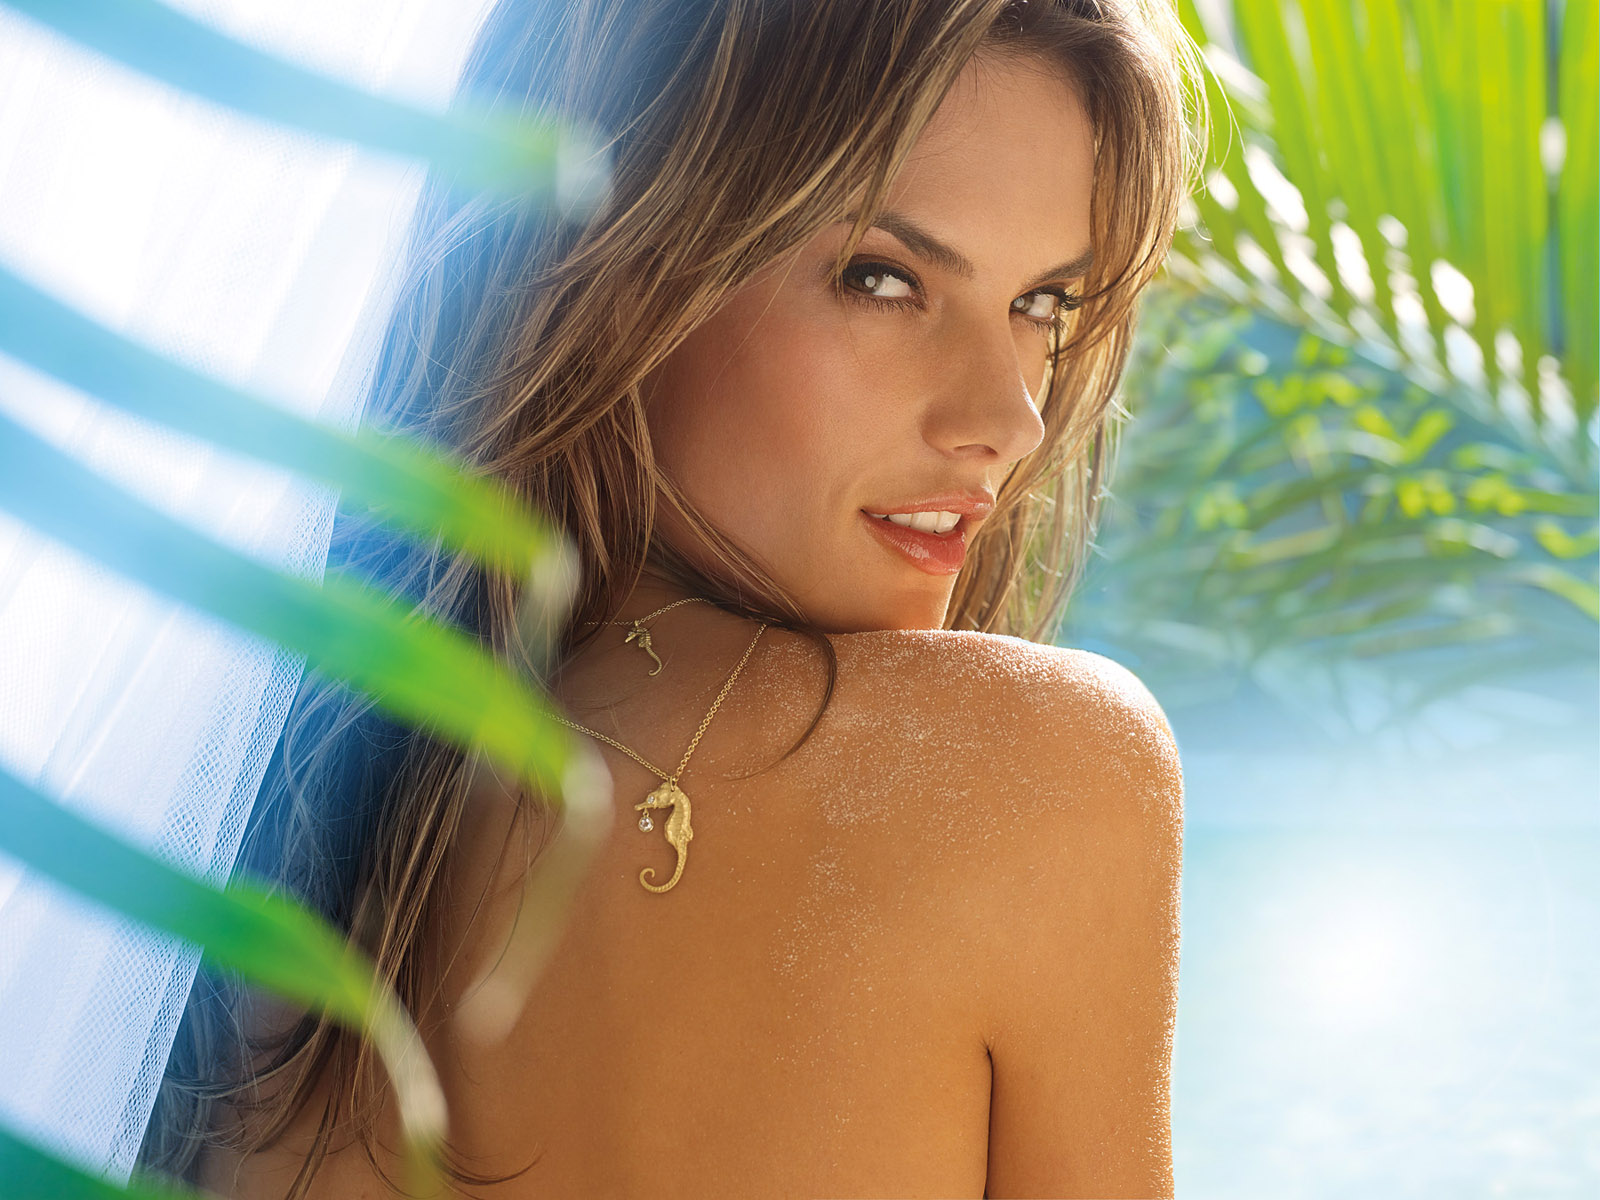 alessandra ambrosio wallpapers - photo #4